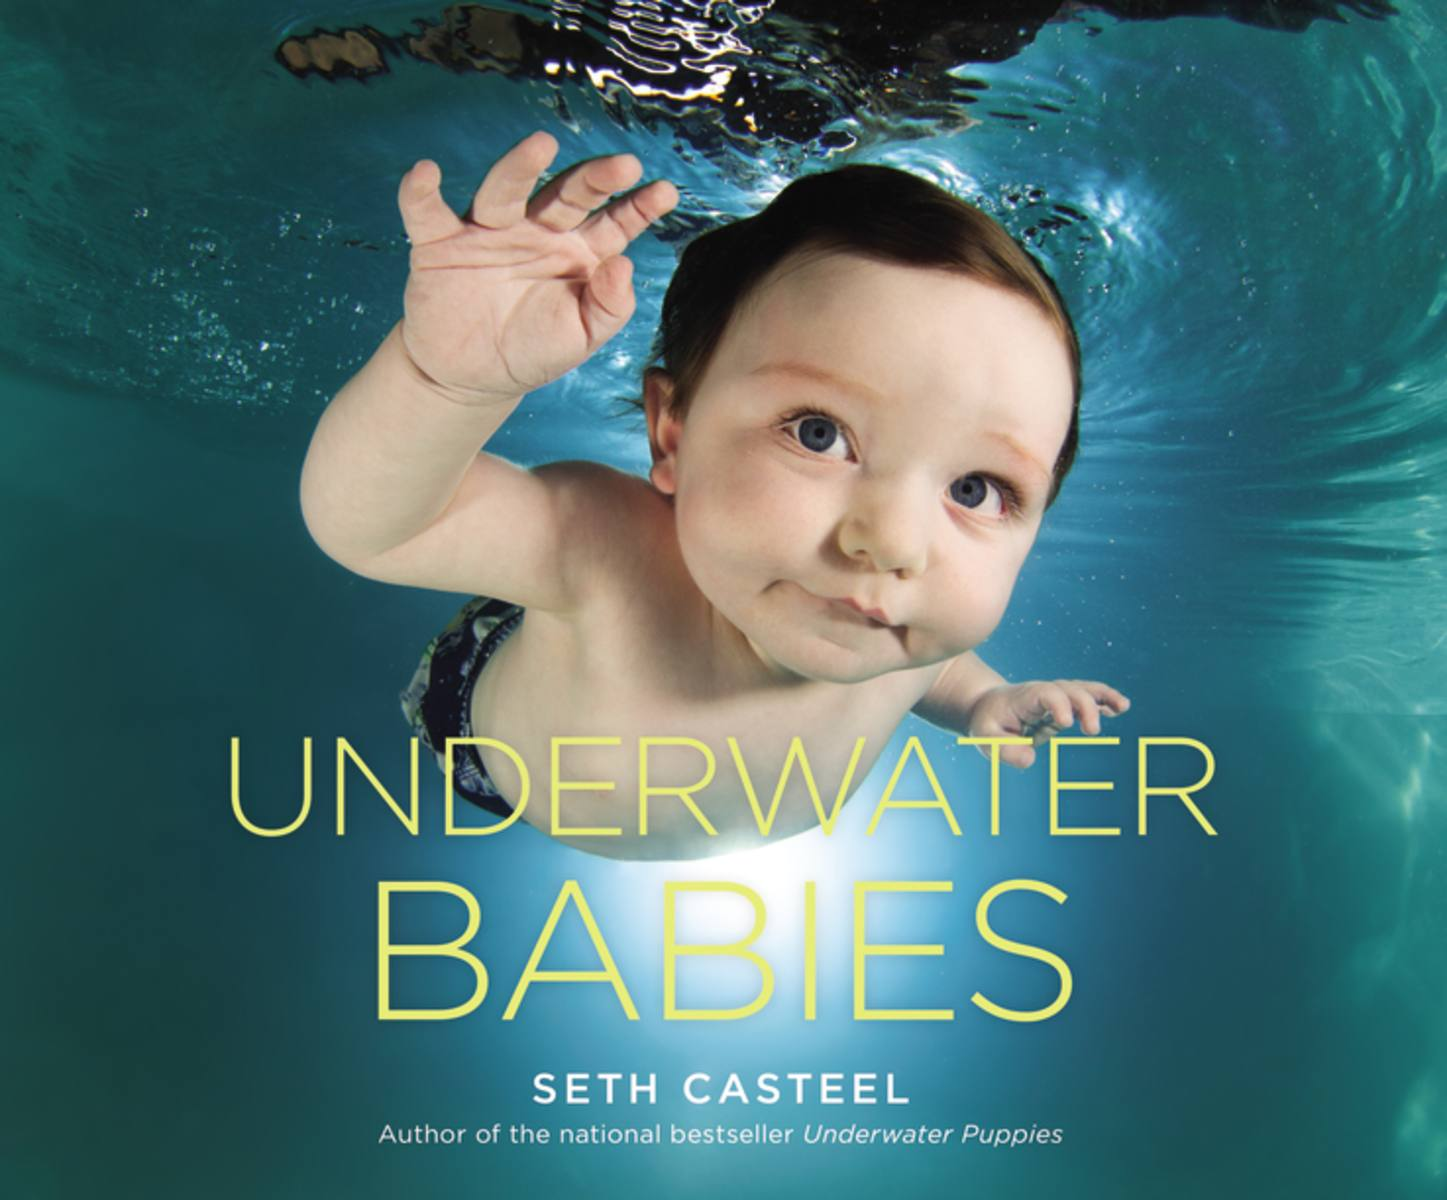 'Underwater Babies' Photographer Seeks to Bring Awareness Through Work